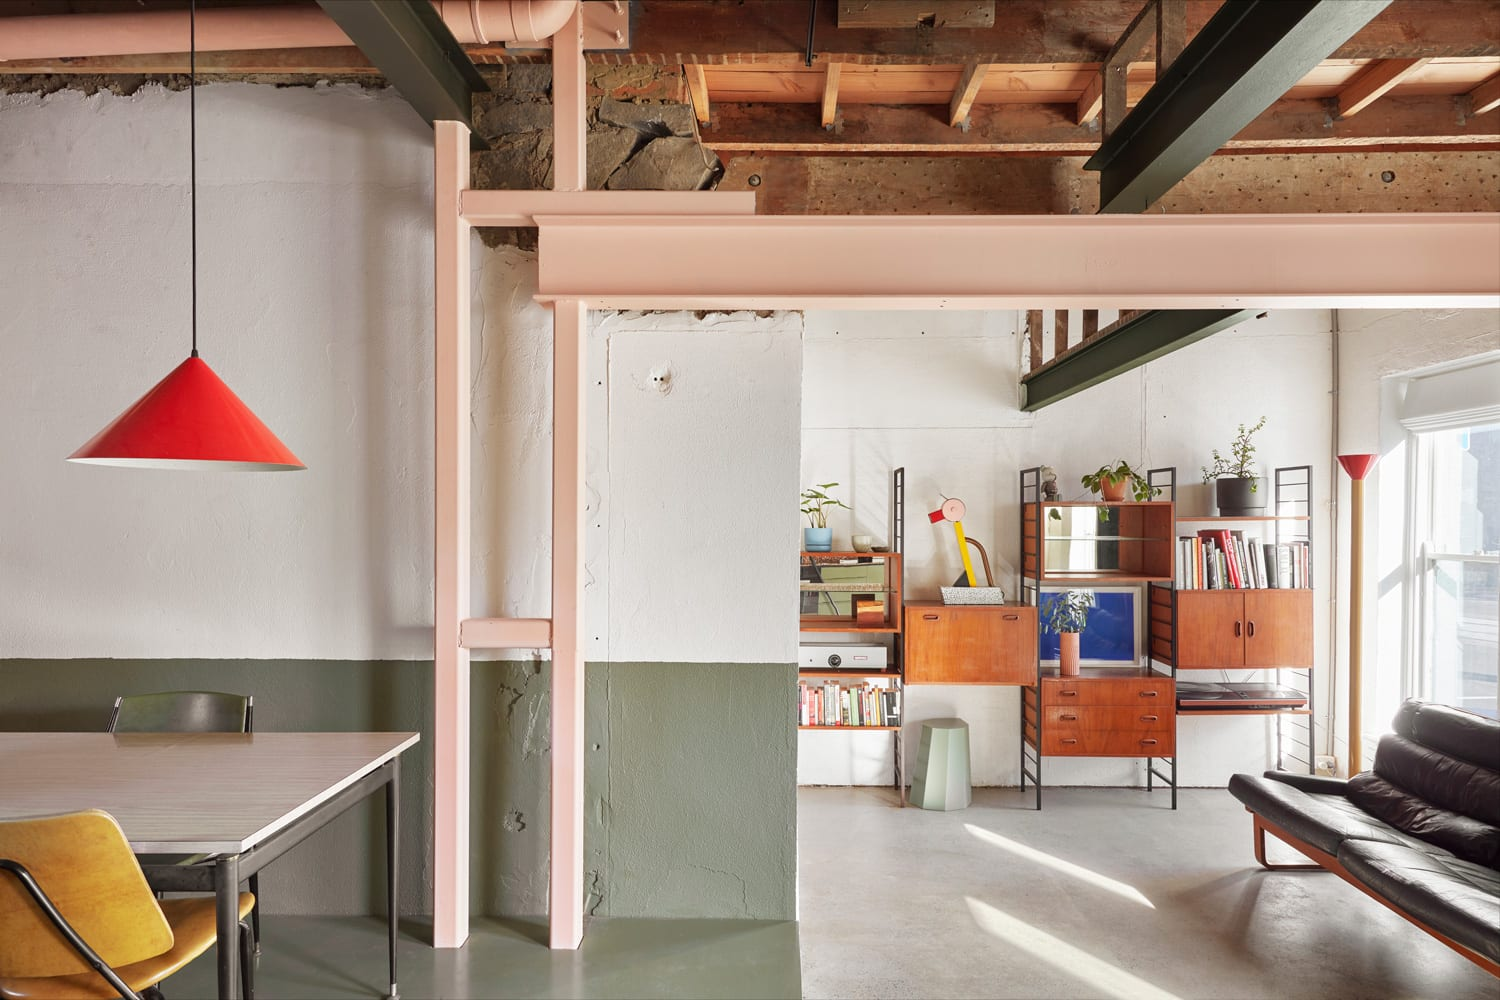 Hoa's House: Conversion of a 150-year-old Melbourne Pub by ioa-studio | Yellowtrace